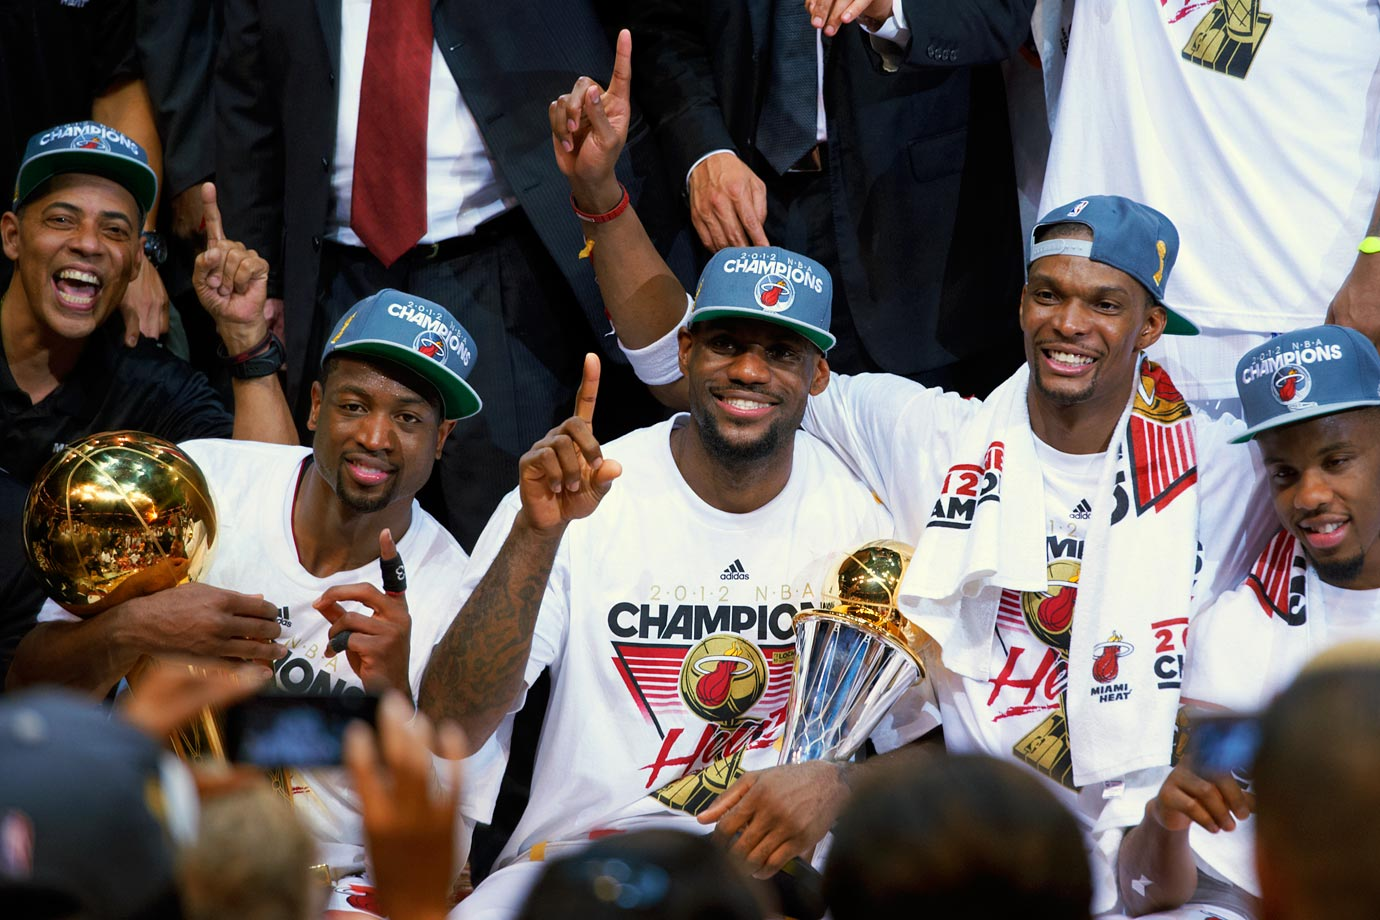 Following a triple-double of 26 points, 13 assists and 11 rebounds that was representative of his play throughout the Finals, LeBron James won his first championship after nine seasons in the NBA. Two years earlier, he was vilified for the way he left Cleveland, and for believing that winning the championship would take care of itself now that he was playing with Dwyane Wade and Chris Bosh. One year earlier, he watched Dirk Nowitzki redeem his own career with a championship earned at James' expense. But in 2012, LeBron got his title and was named MVP of the Finals in the process.